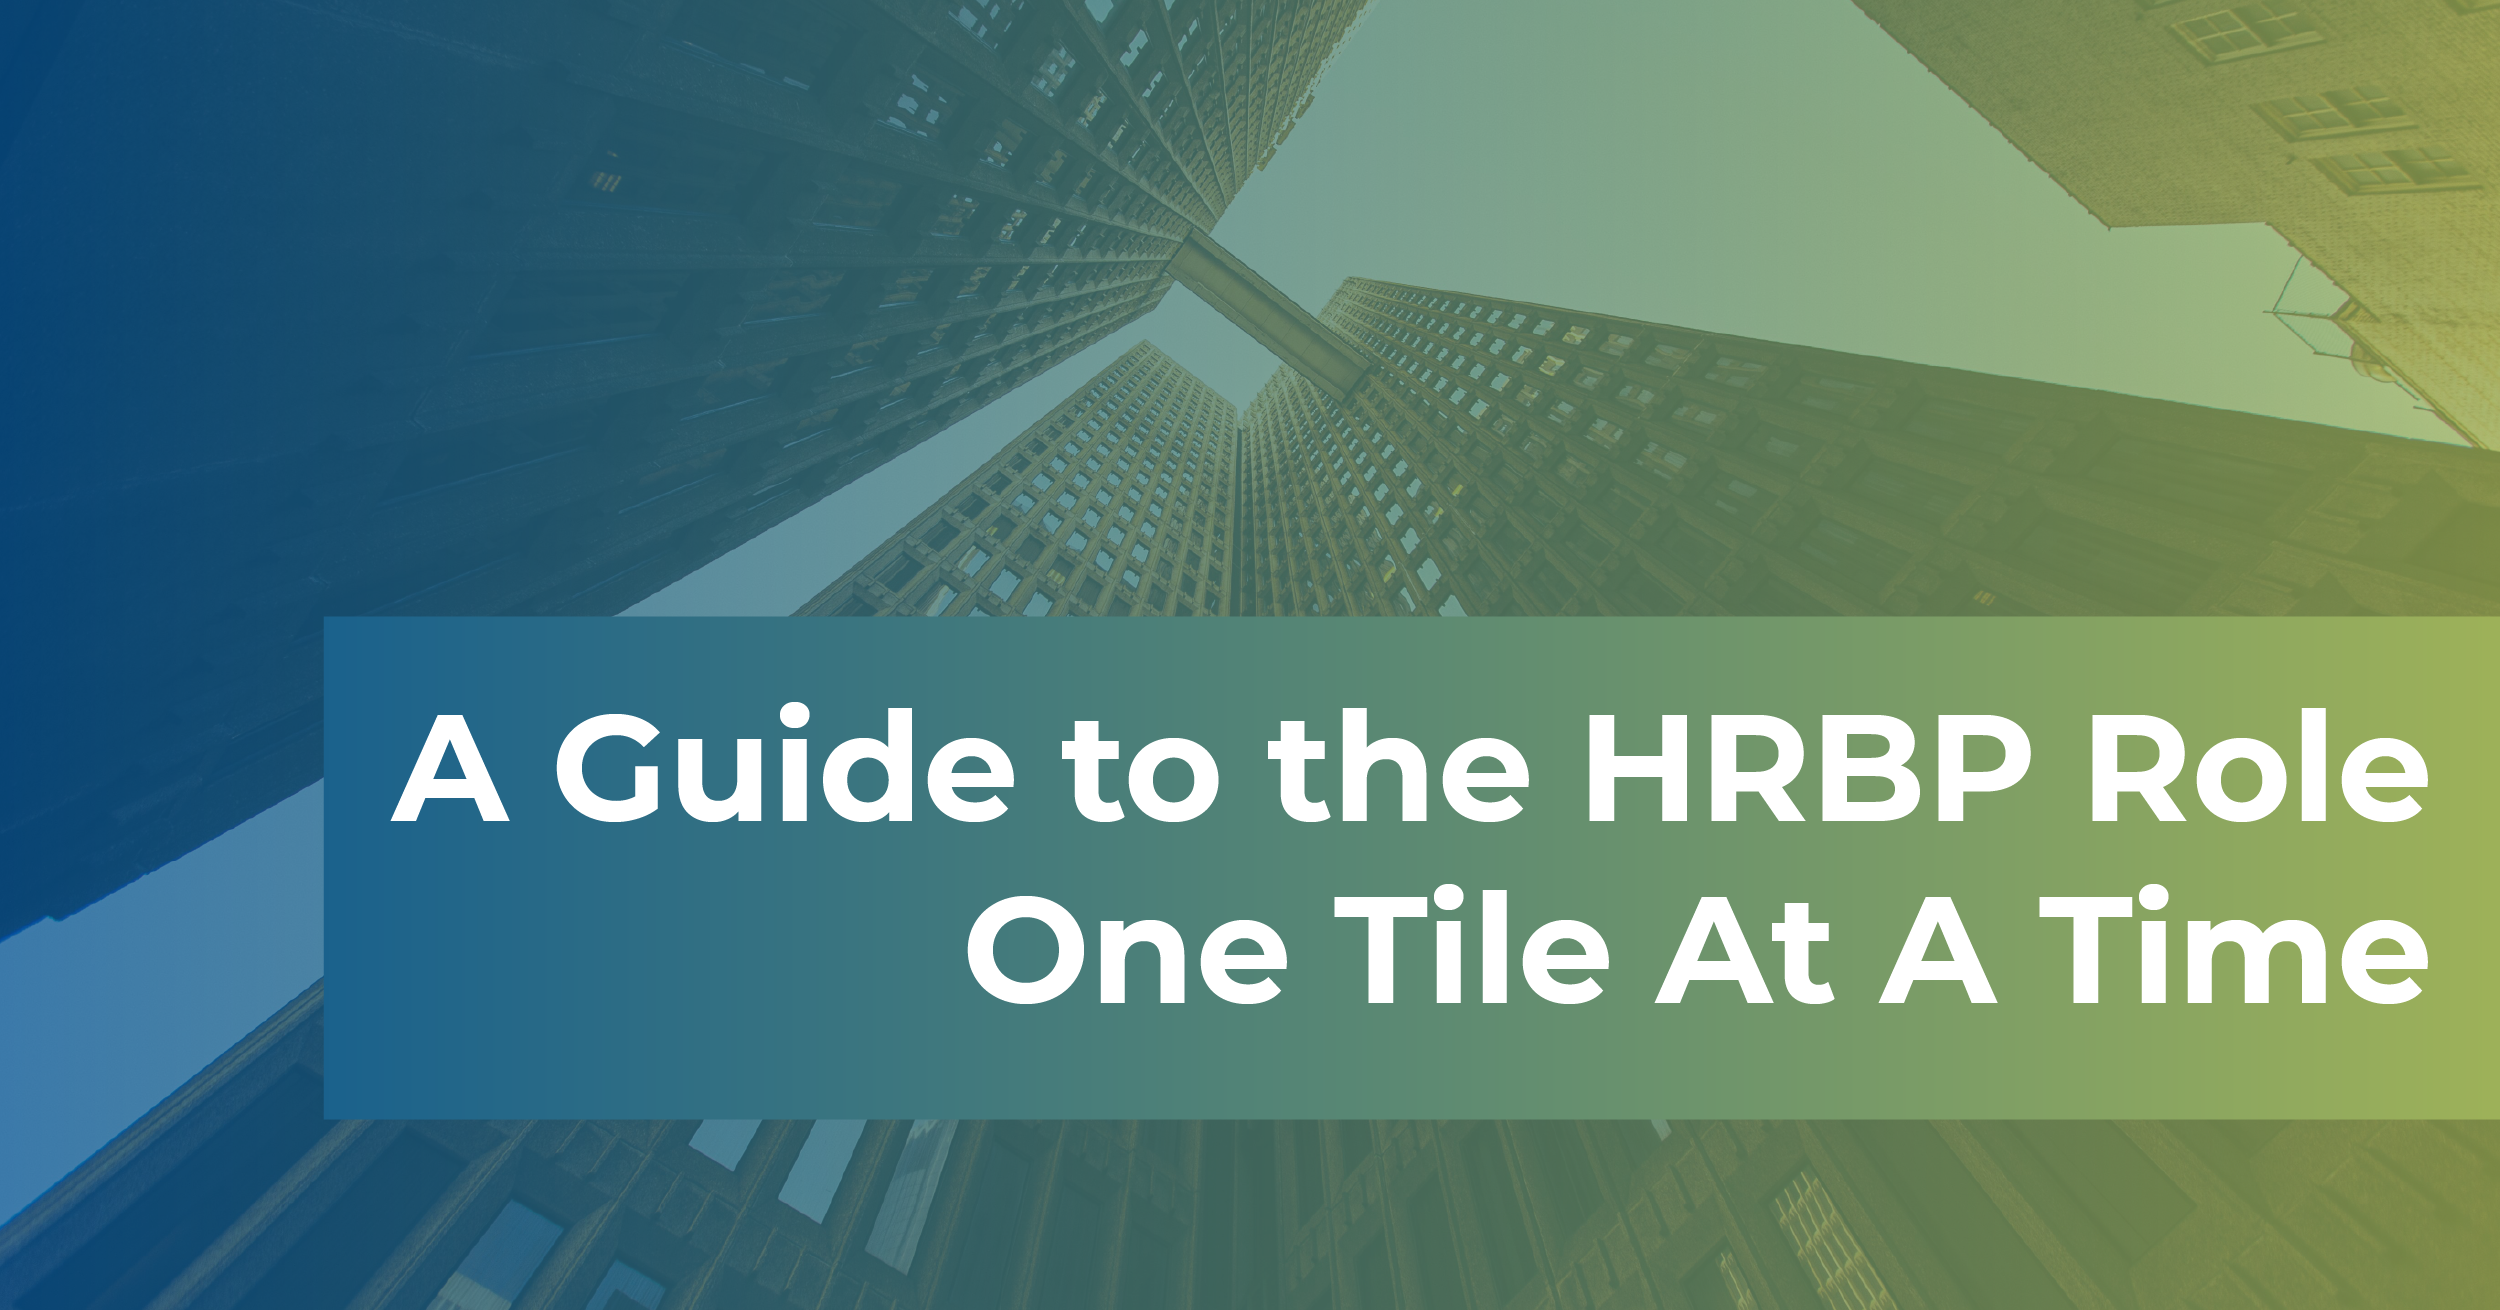 A Guide to the HRBP Role – One Tile At A Time